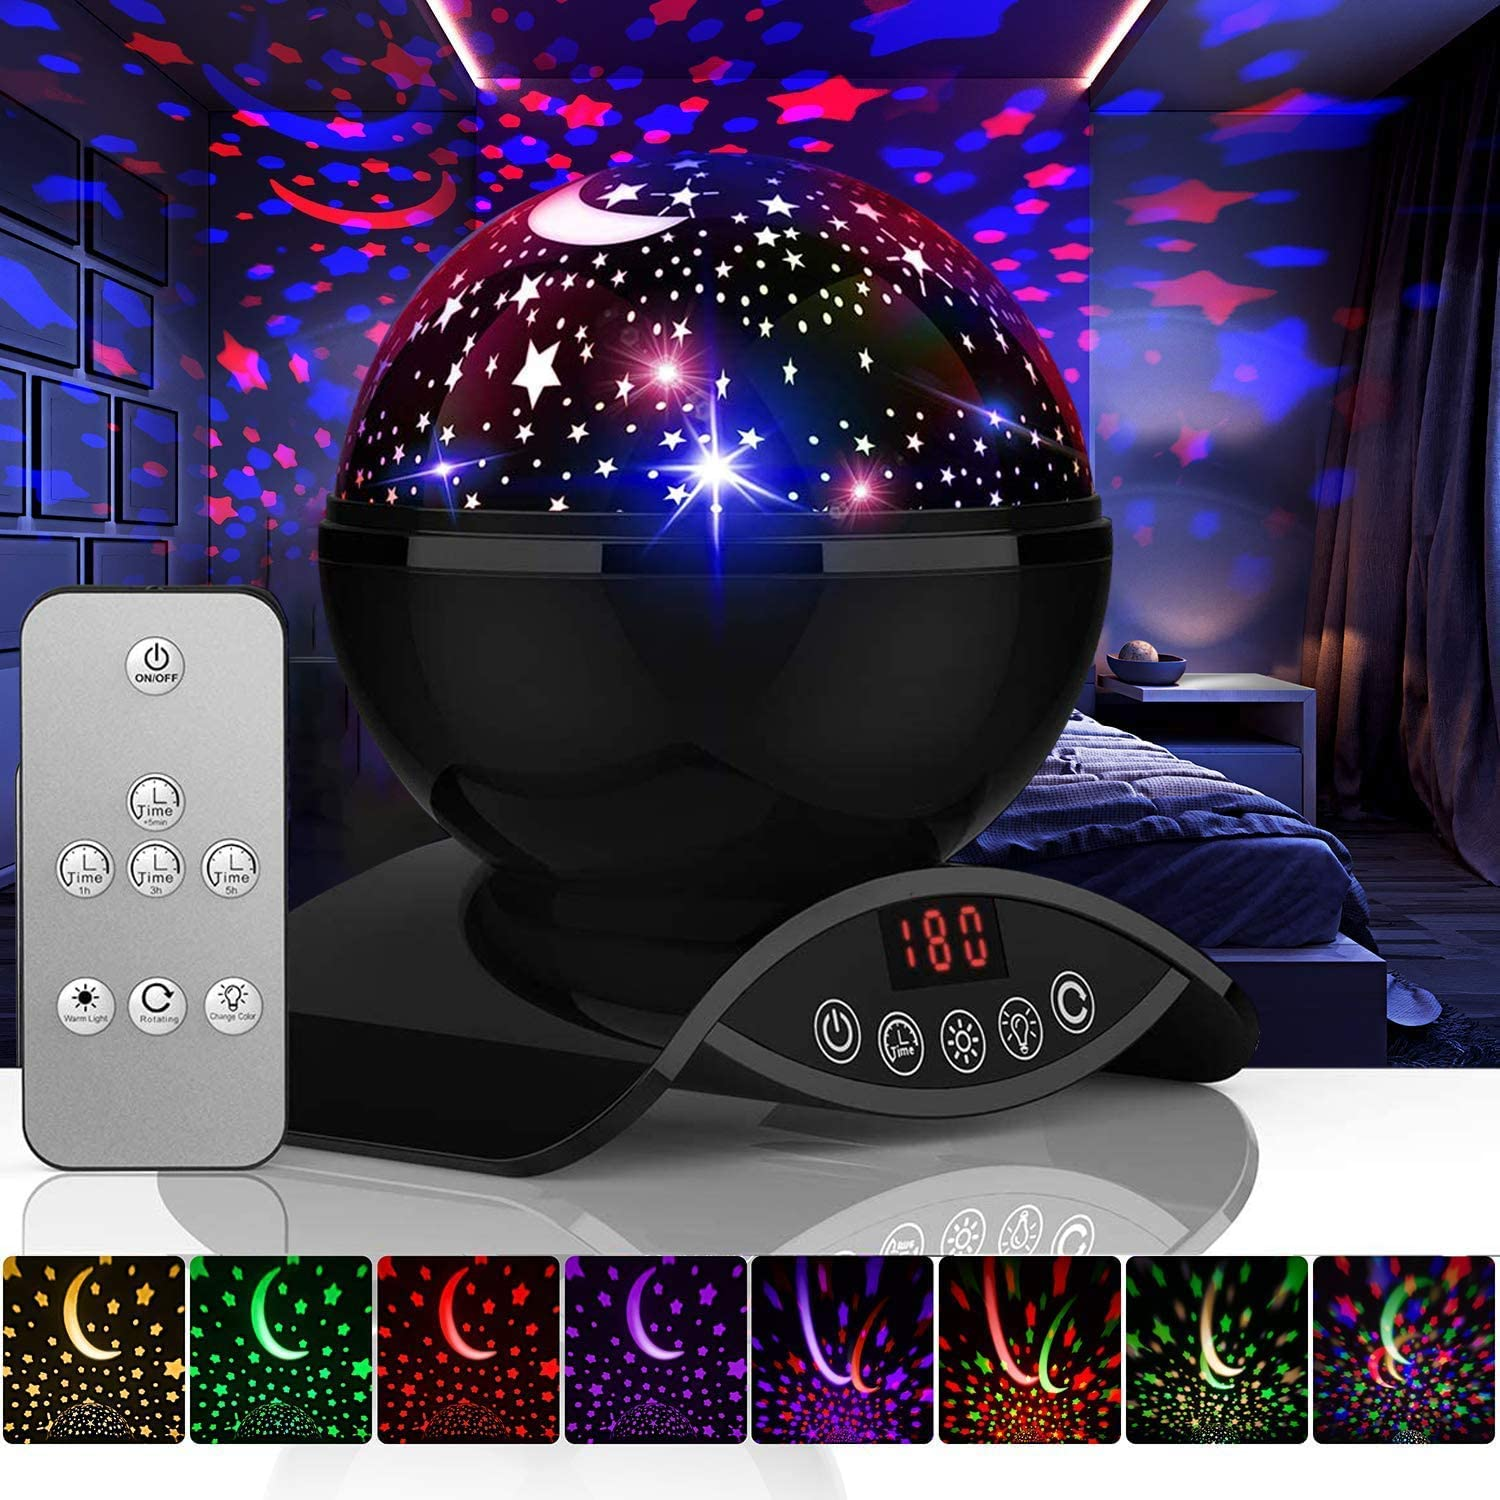 YSD Night Lighting Lamp, Modern Star Rotating Sky Projection, Romantic Star Projector Lamp for Kids, USB Rechargeable & Remote Control, Best Gifts for Kids,Bedroom(Upgrade)